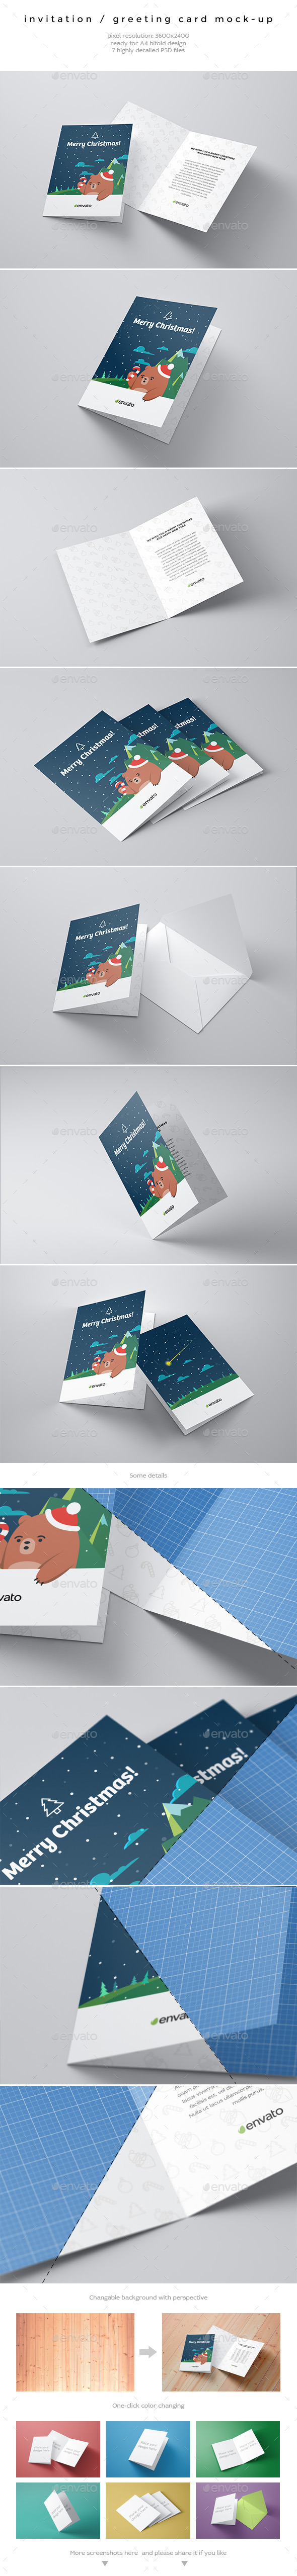 Invitation / Greeting Card Mock-Up  - Miscellaneous Print